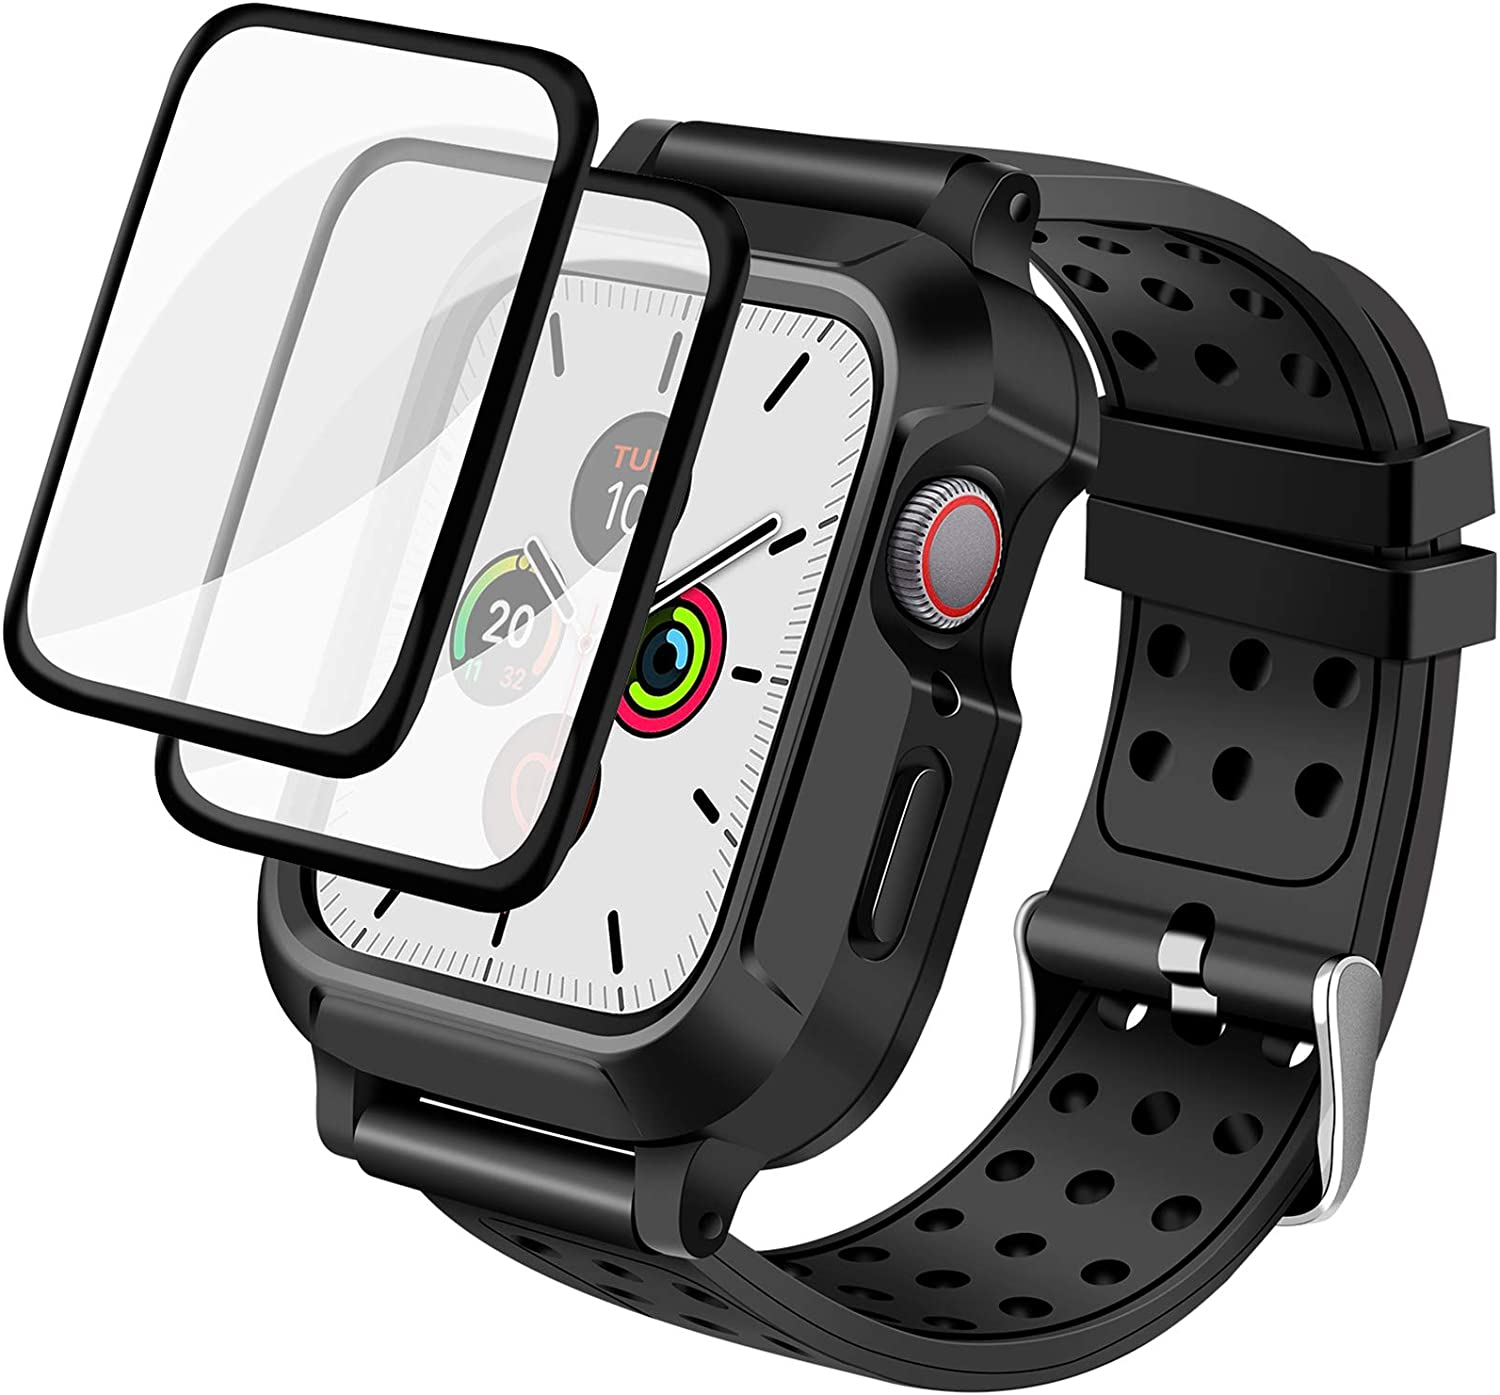 ADDSMILE Compatible for Apple Watch Case 44MM Series 6/SE/5/4, Rugged Protective Case with Soft Silicone Band and Anti-Scratch Screen Protector, Shockproof Dropproof Case Designed for iWatch 44mm